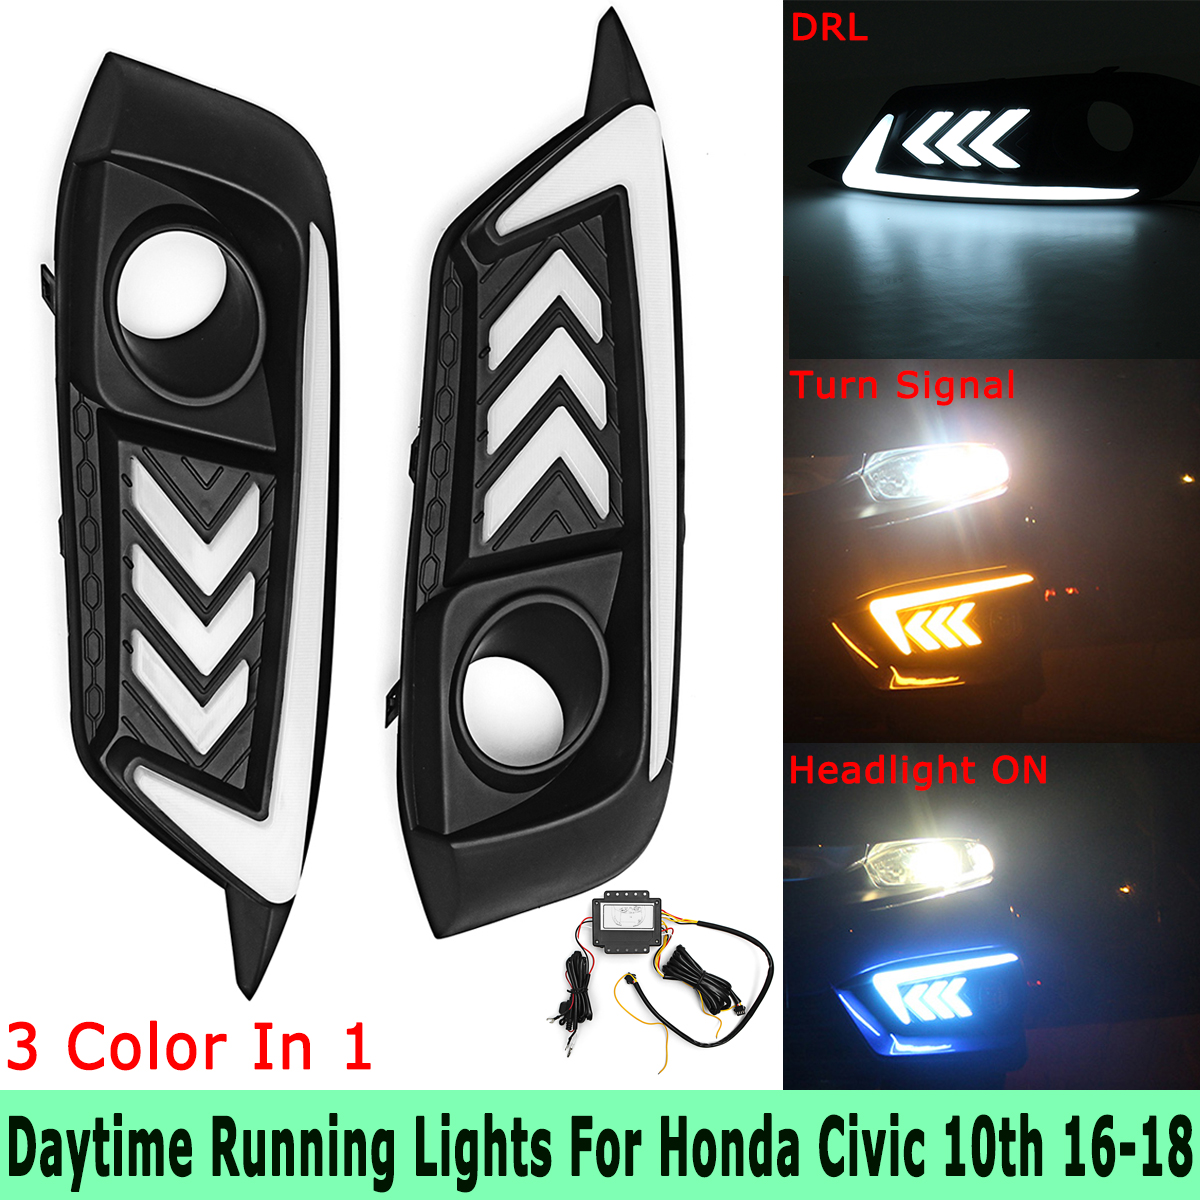 Blue White Yellow LED DRL Headlight Daytime Running Lamps Turn Signal Fog Lights for Honda for Civic 10th 2016 2017 2018 high quality 3 colors white yellow ice blue led car drl daytime running lights fog light with yellow turn signal for honda jade